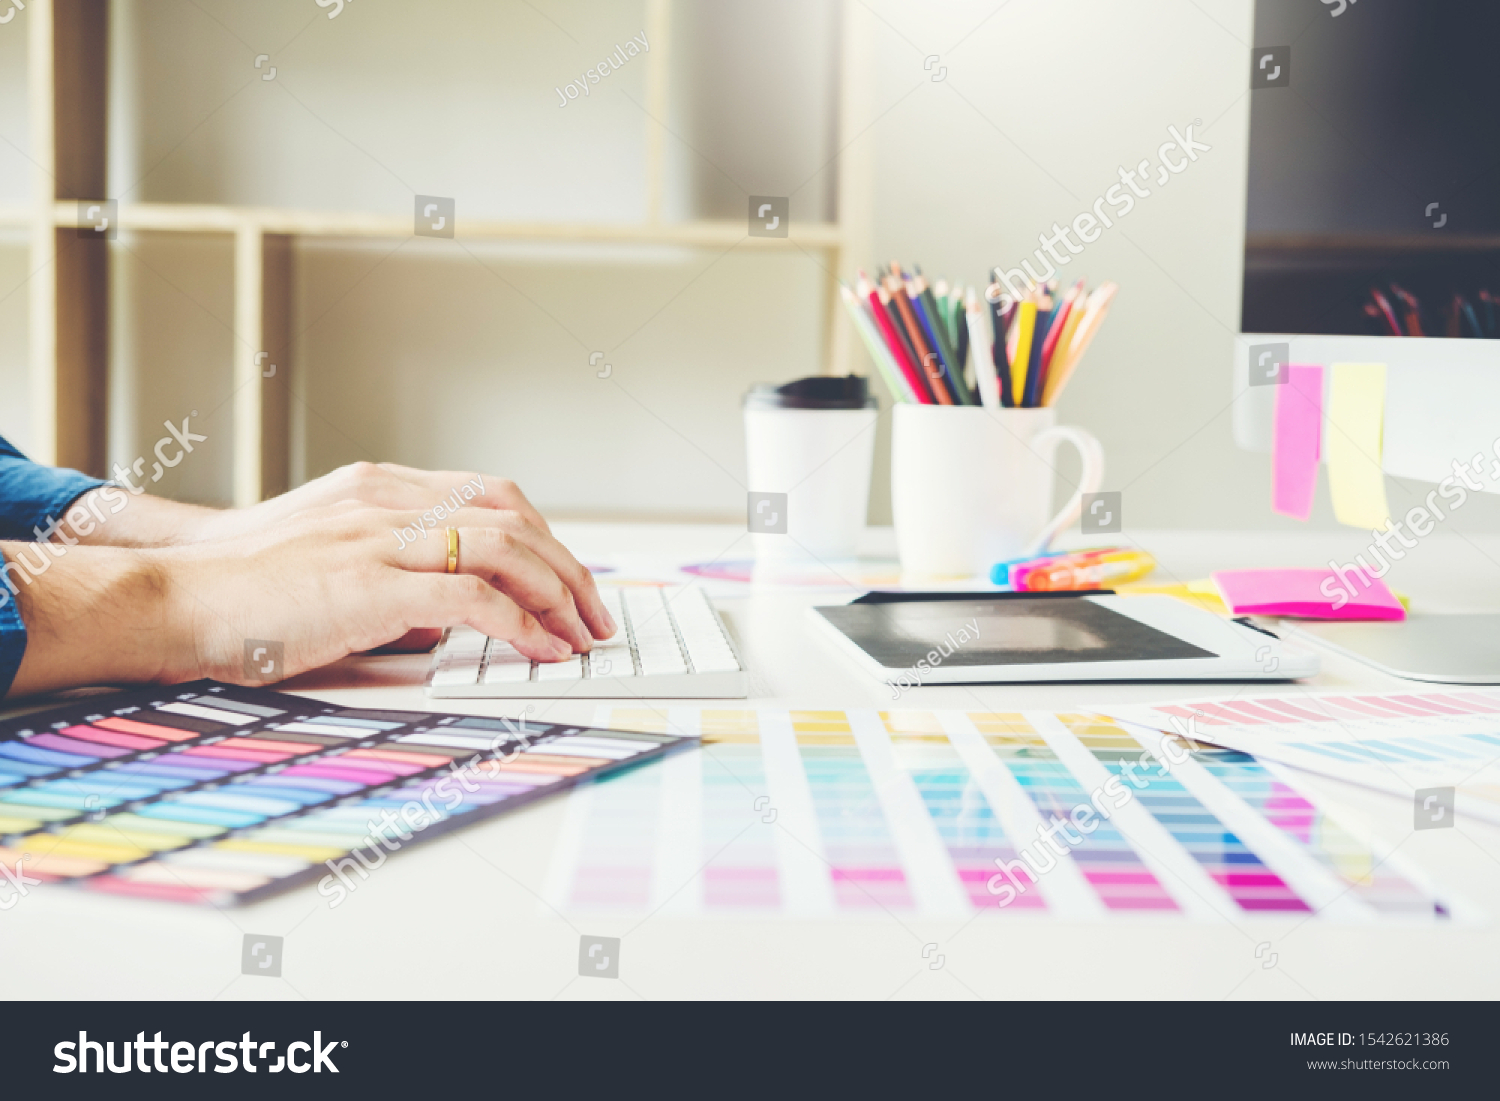 Graphic designer drawing on graphics tablet at workplace #1542621386